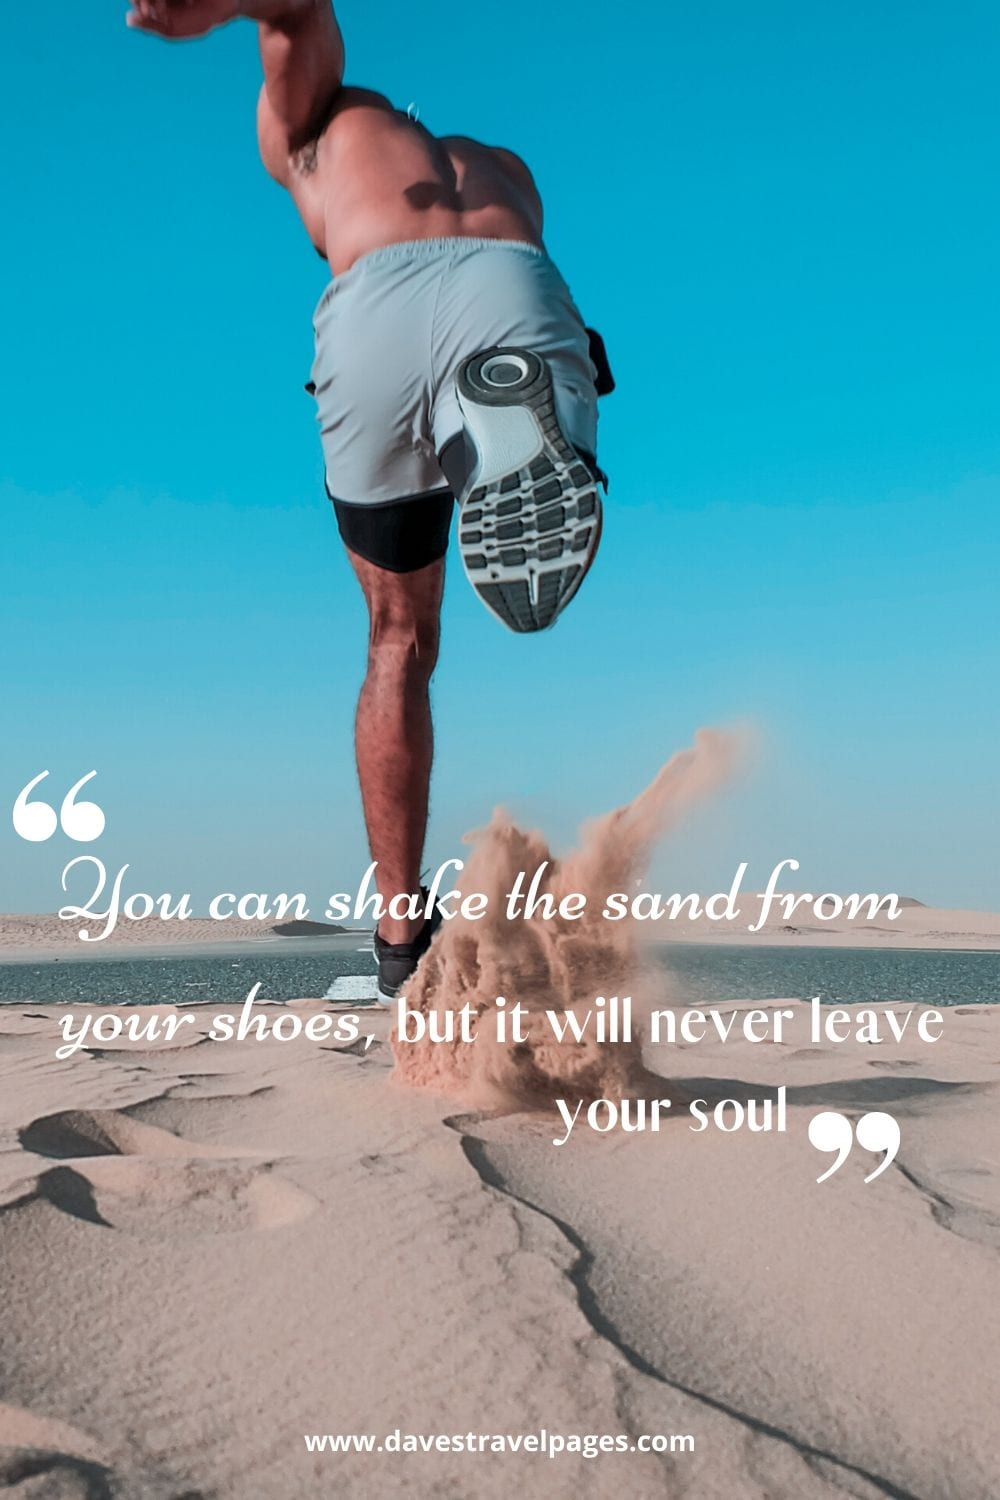 """Beach Quotes: """"You can shake the sand from your shoes, but it will never leave your soul."""""""